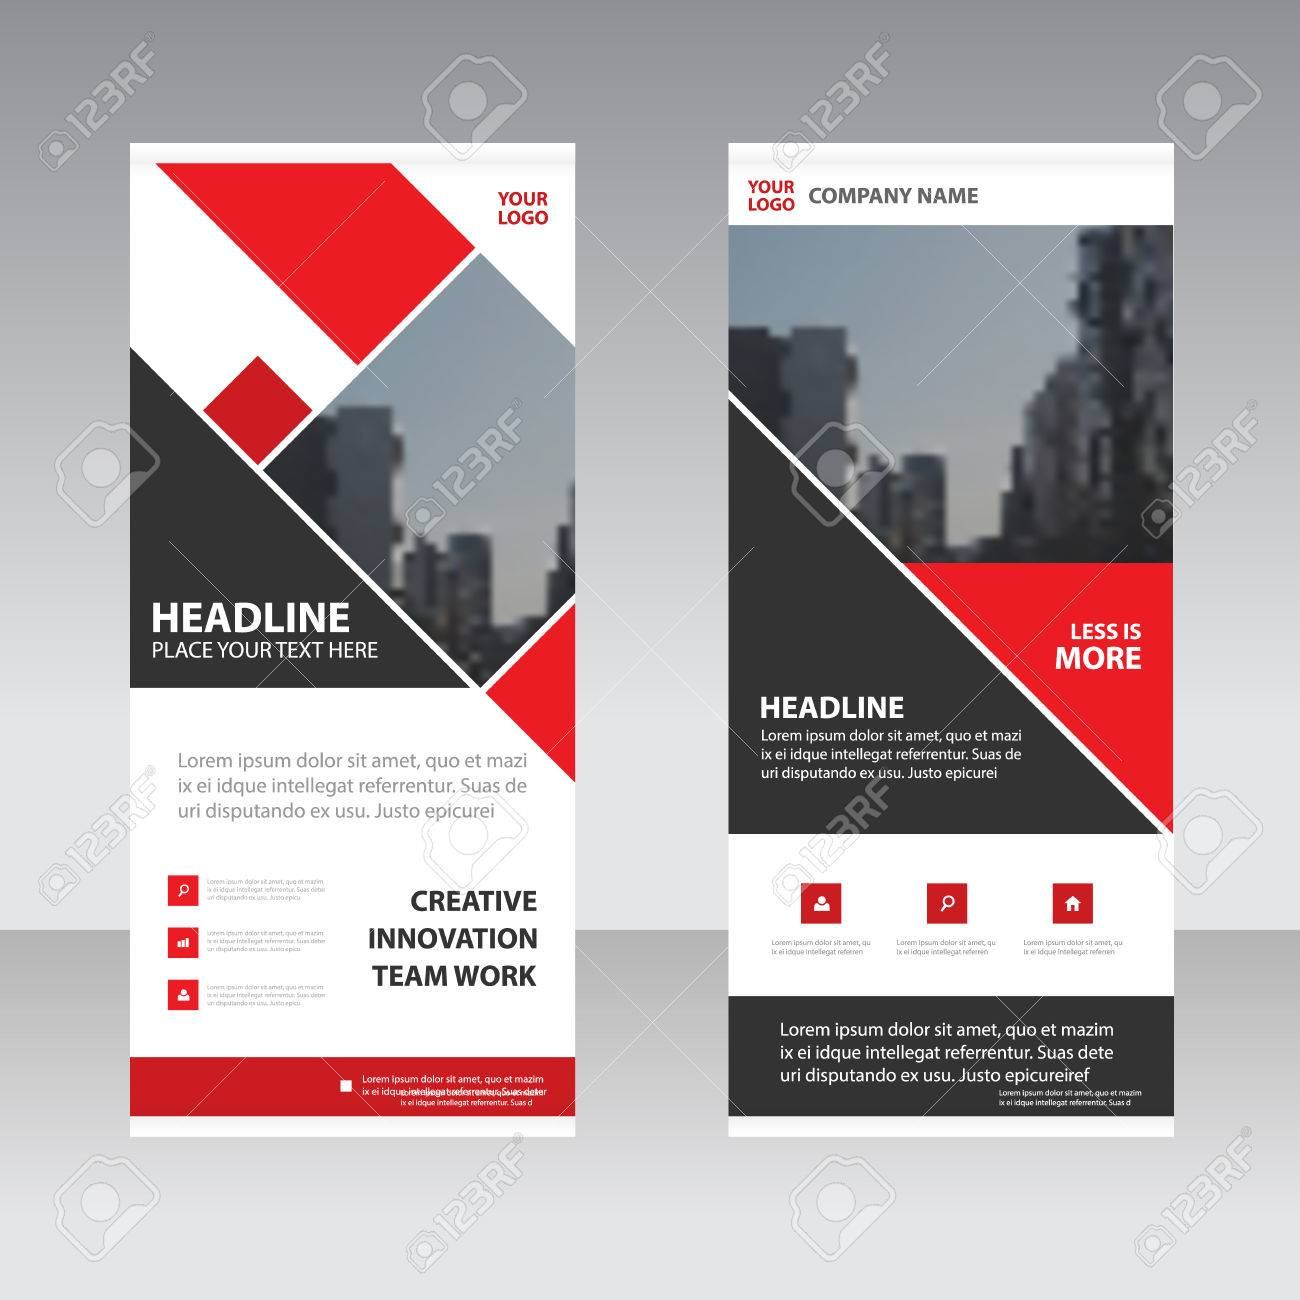 red square business roll up banner flat design template abstract